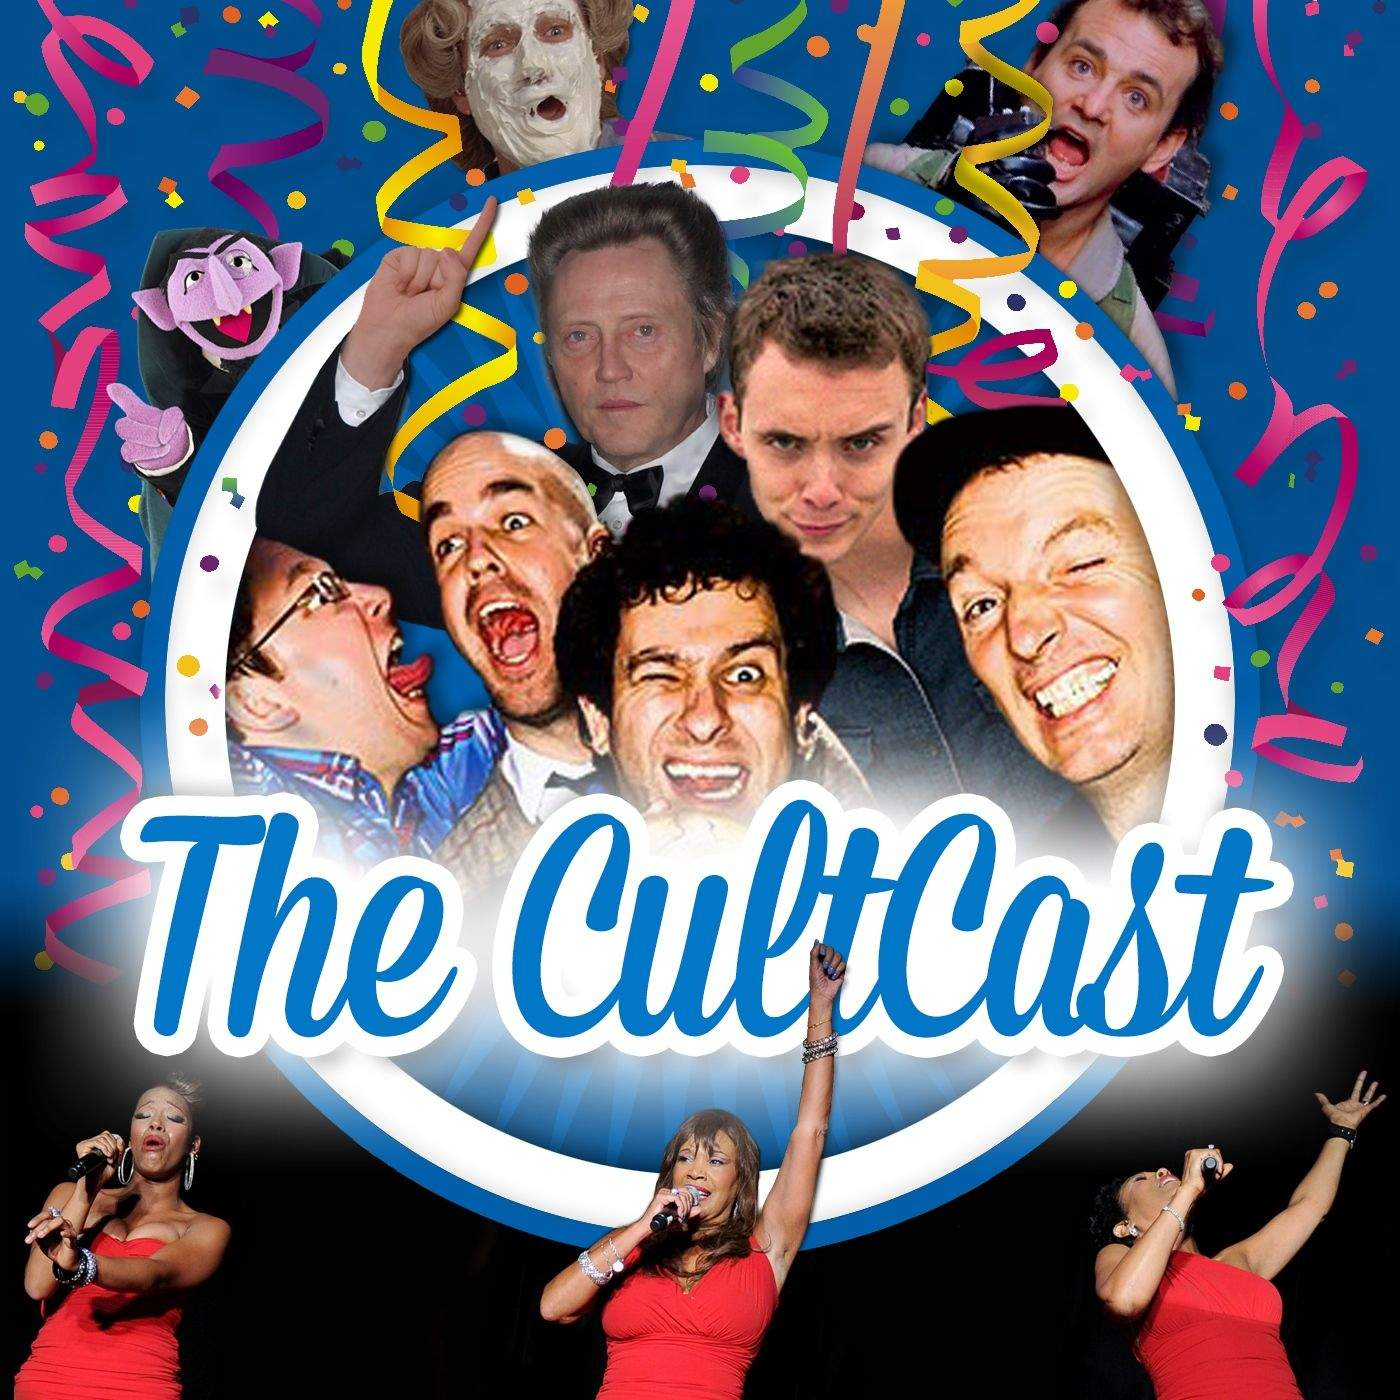 Come party with the CultCast.